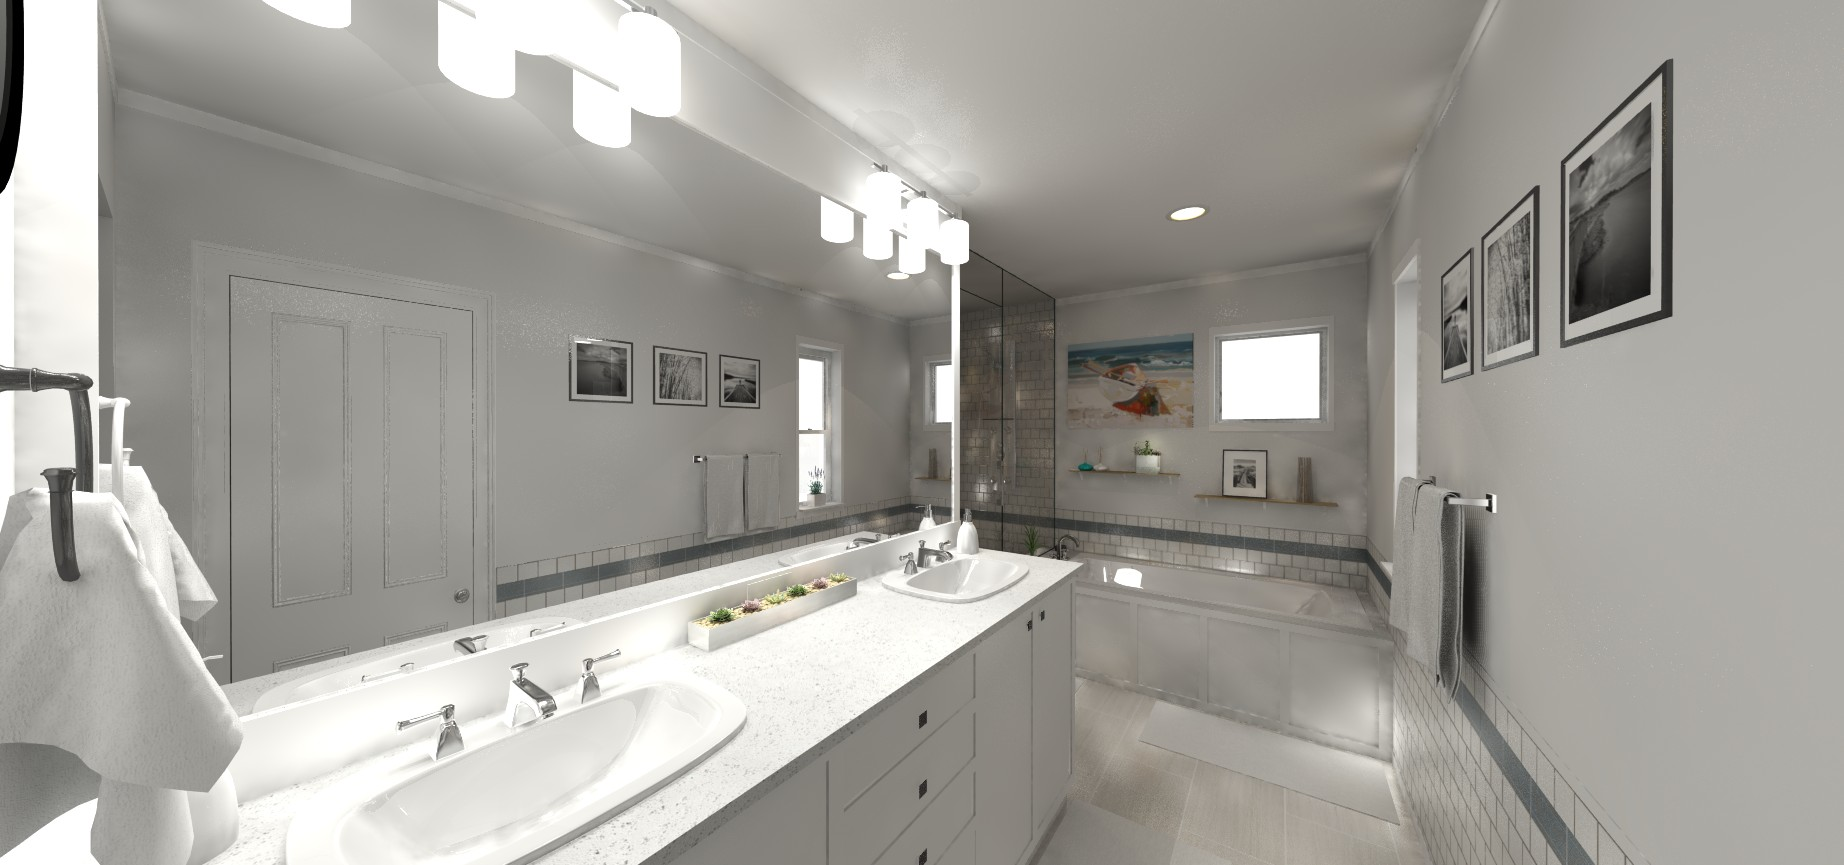 Master Bathroom 2017-04-21 09244000000.jpg